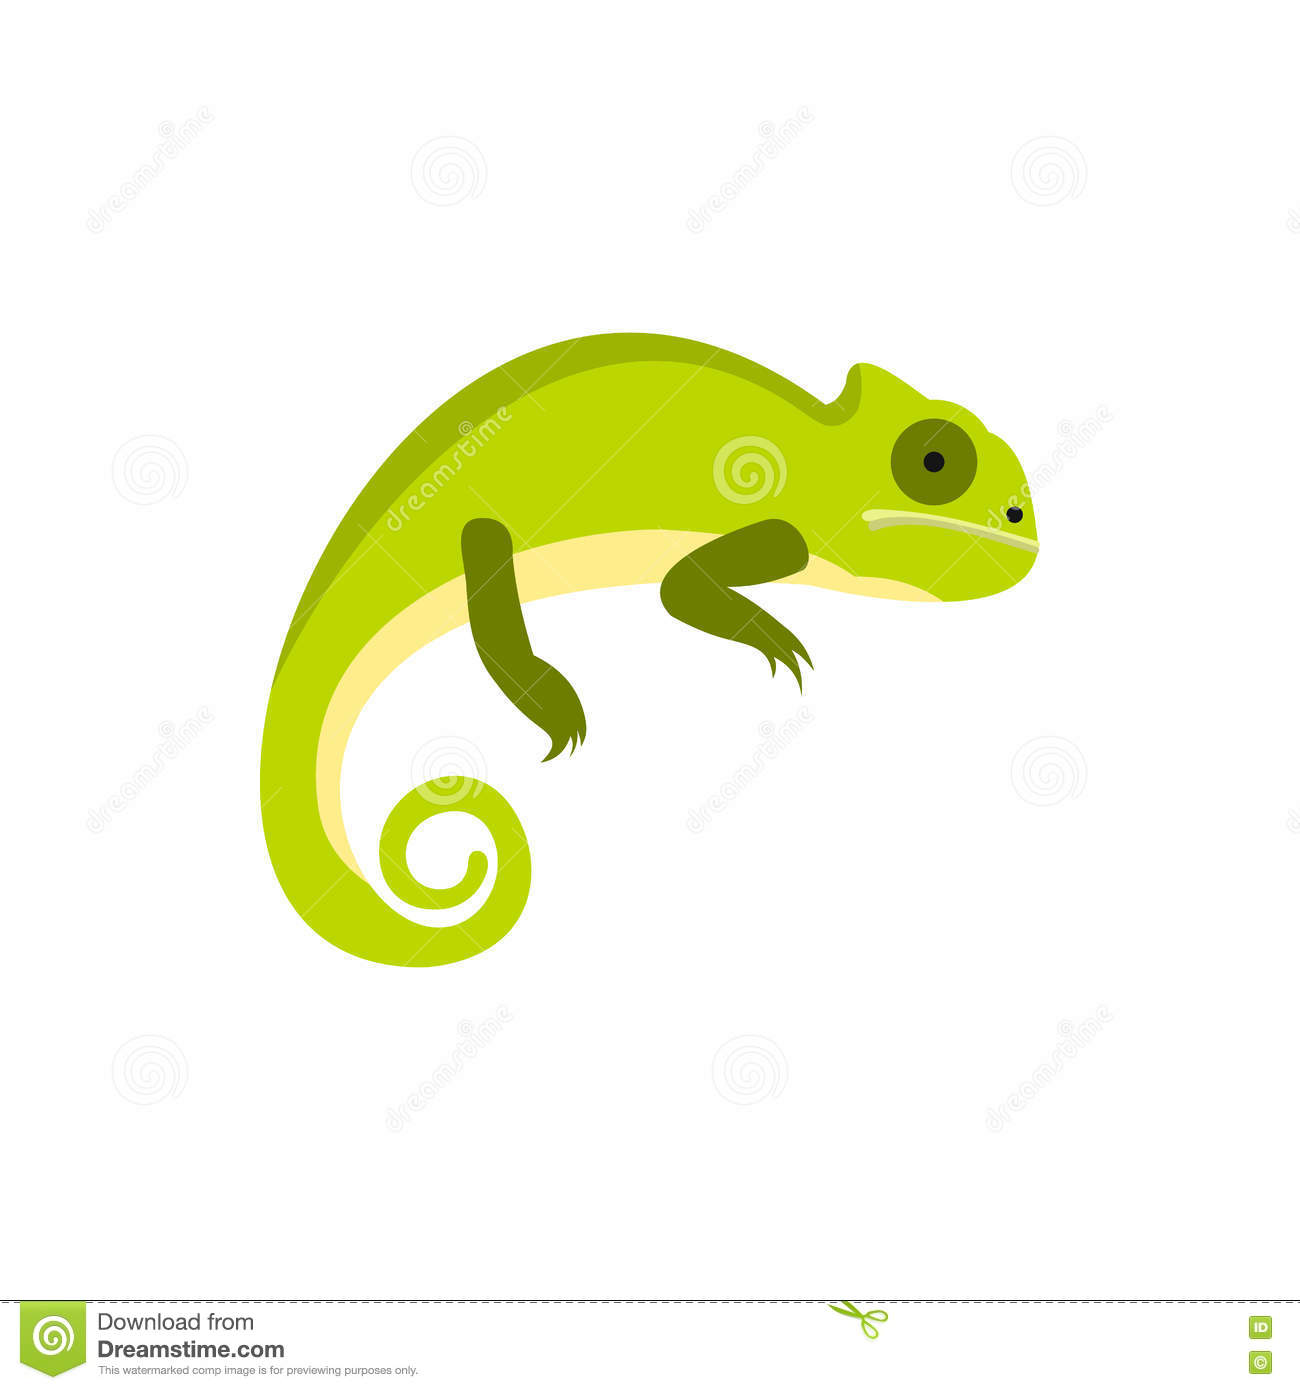 Chameleon Style Chameleon Icon In Flat Style Stock Vector Illustration Of Cute